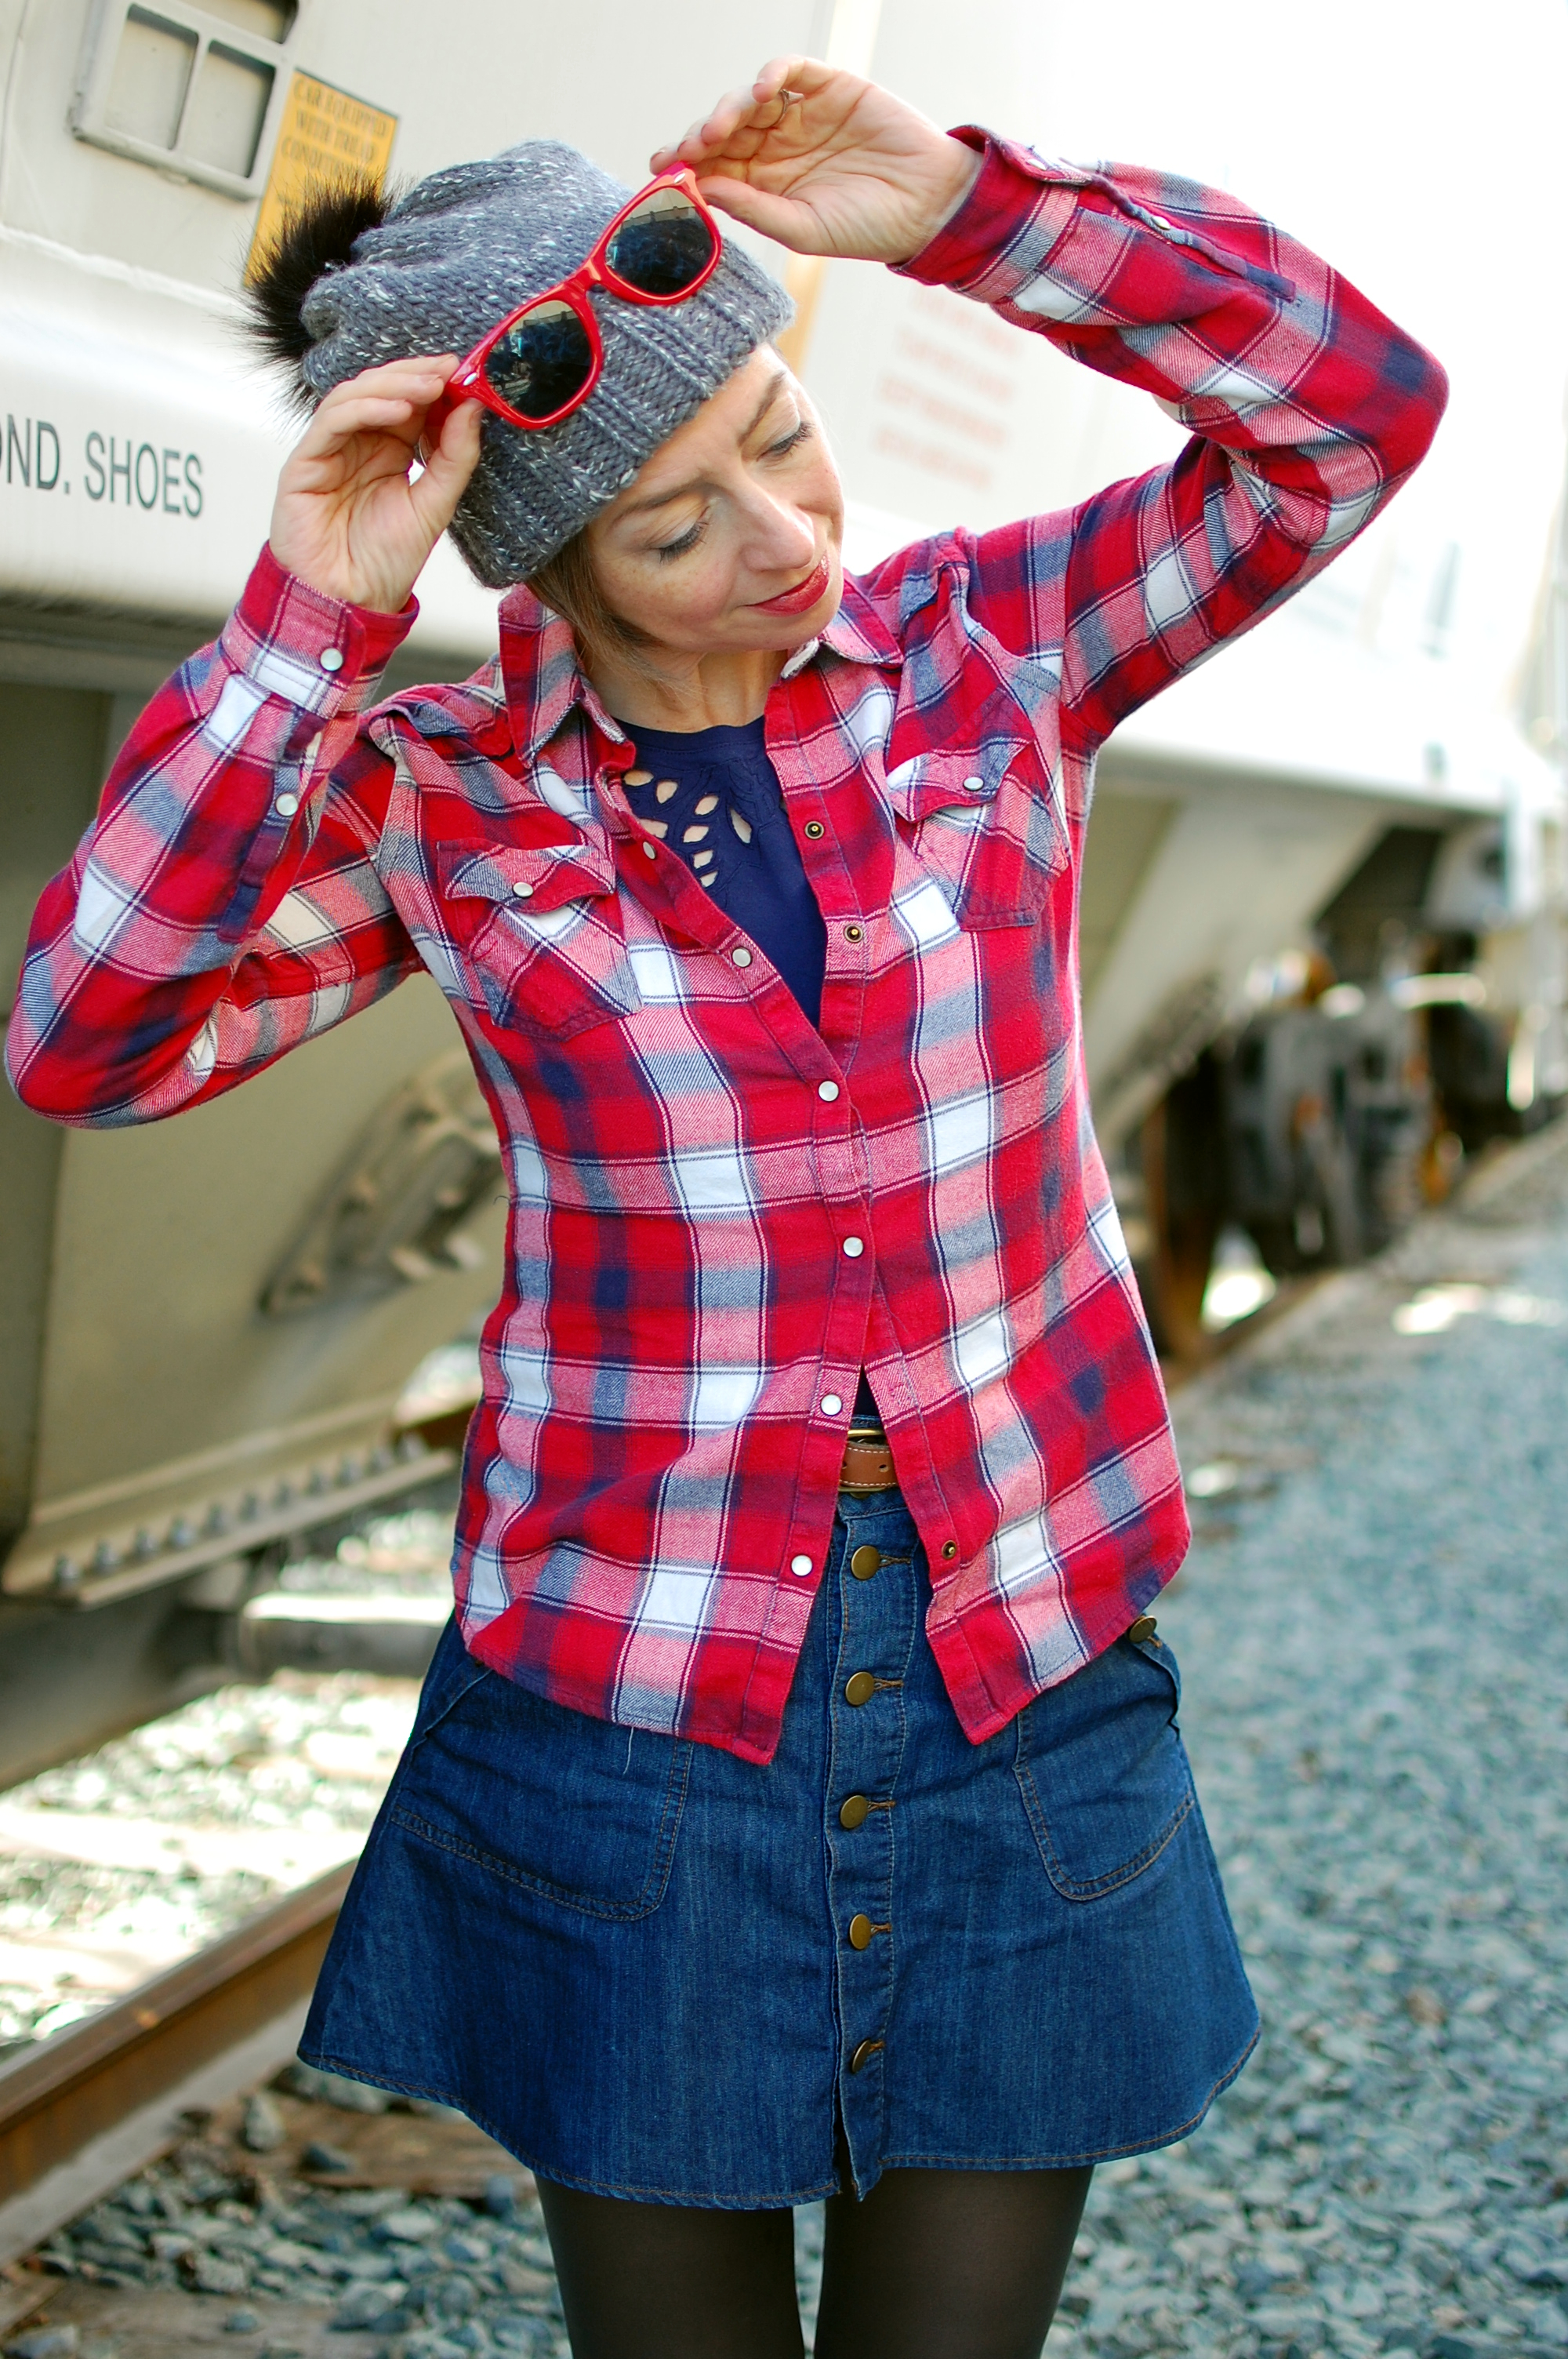 plaid outfit pompom beanie ootd whatiwore2day red navy